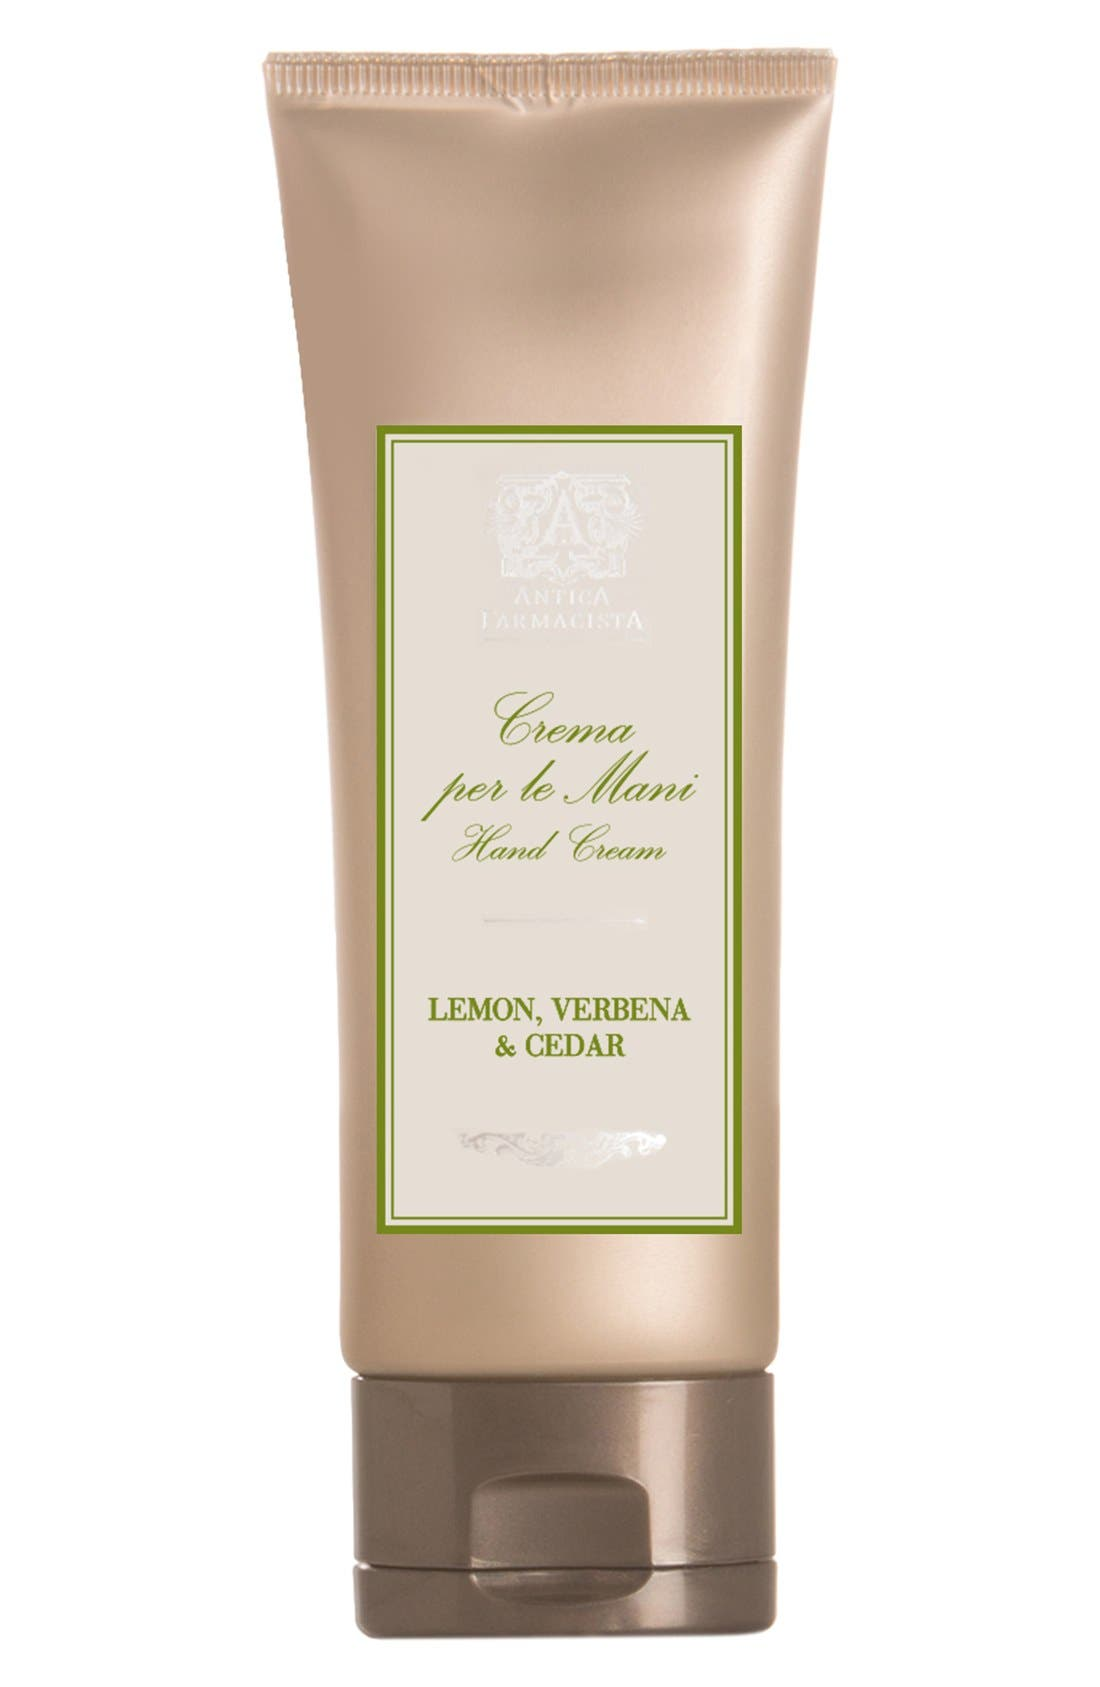 Antica Farmacista 'Lemon, Verbena & Cedar' Hand Cream